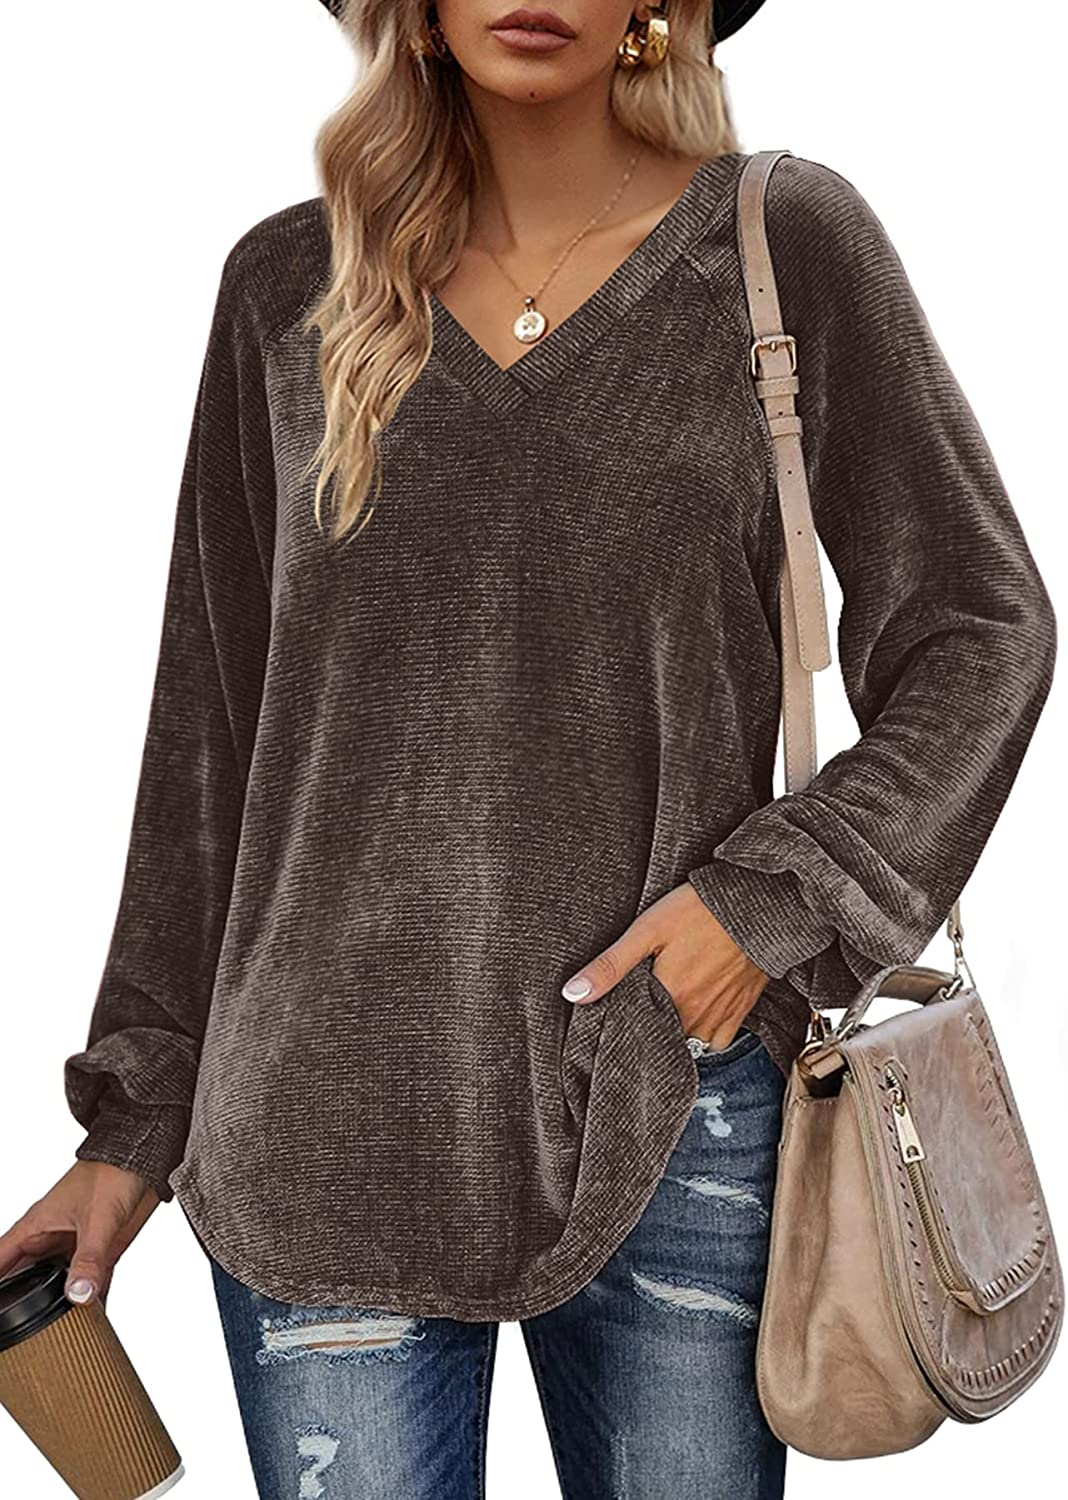 Sieanear Sweaters for Women Oversized Pullover Sweatshirts Casual V Neck Balloon Sleeve Tops